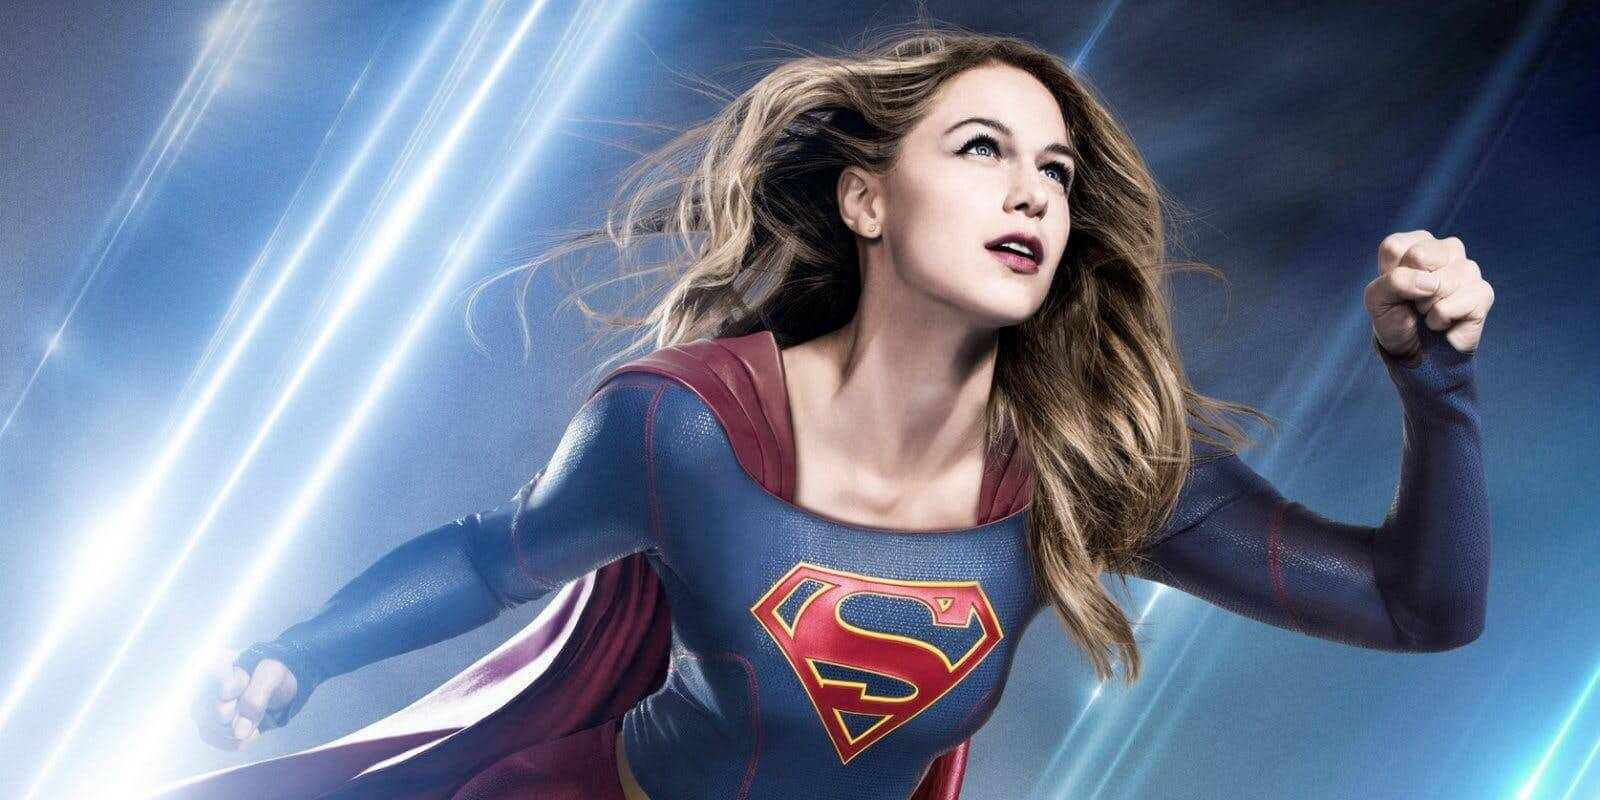 Supergirl - famous female superheroes